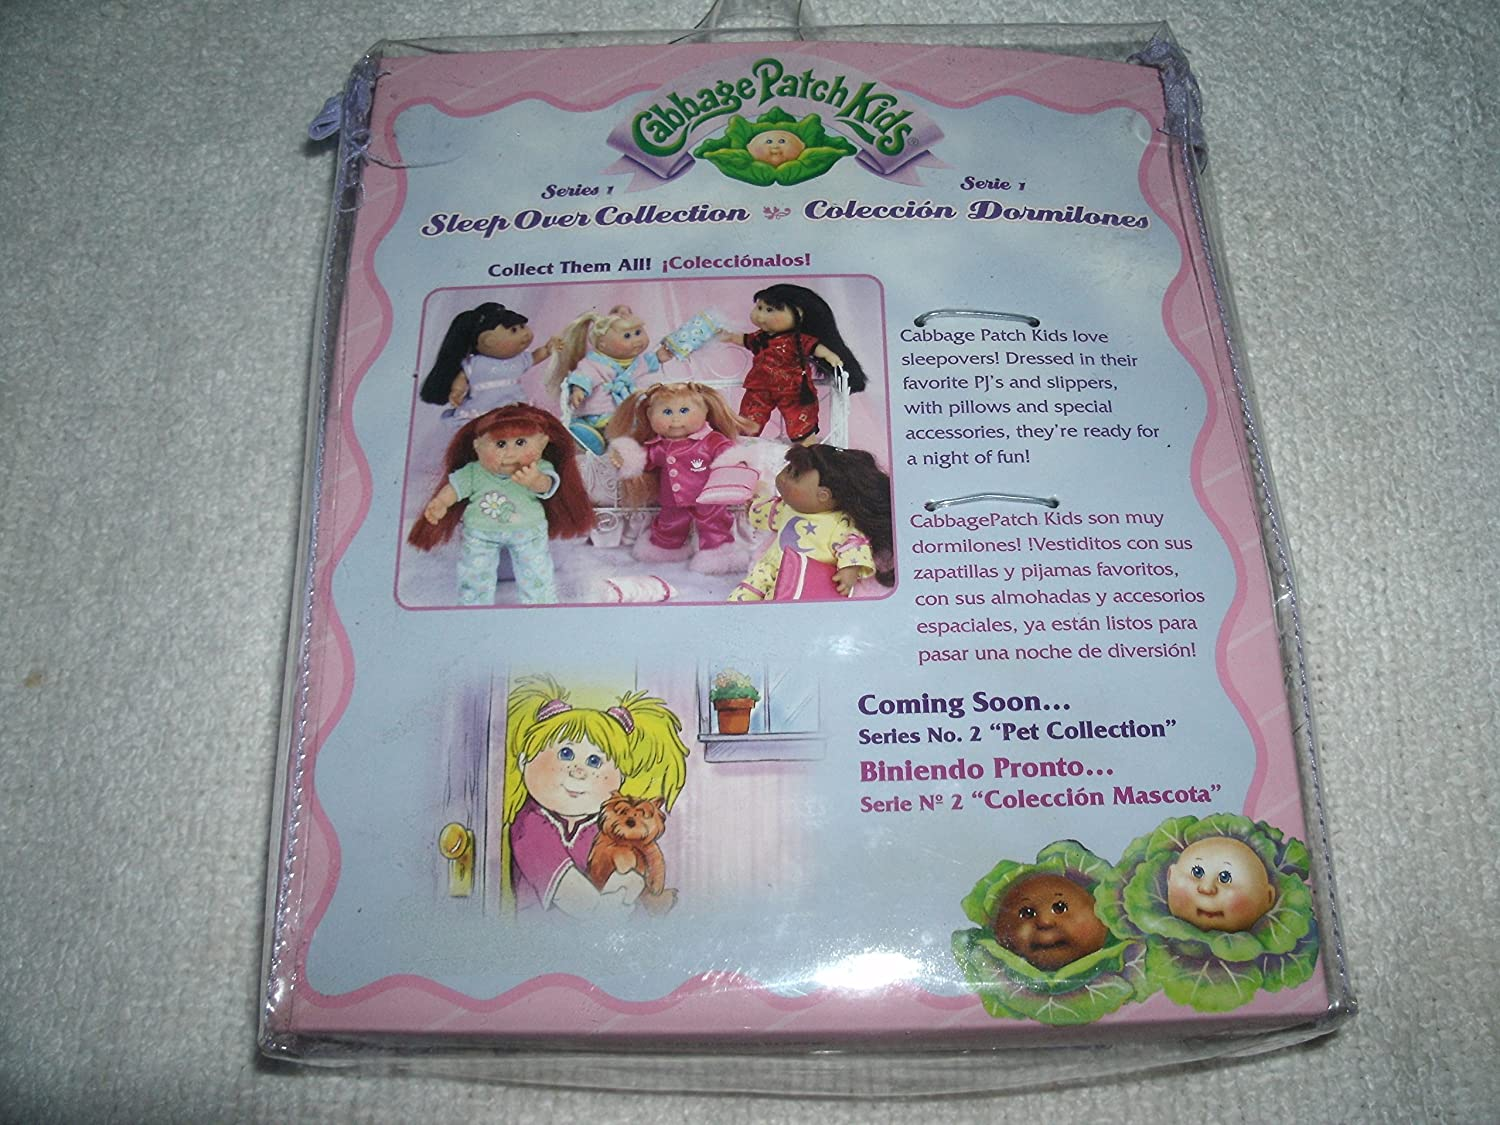 Amazon.com: Vintage 2004 Cabbage Patch Kids Sleep Over Collection Series 1 Doll in Pink Princess Pajamas With Accessories and Birth Certificate: Toys & ...